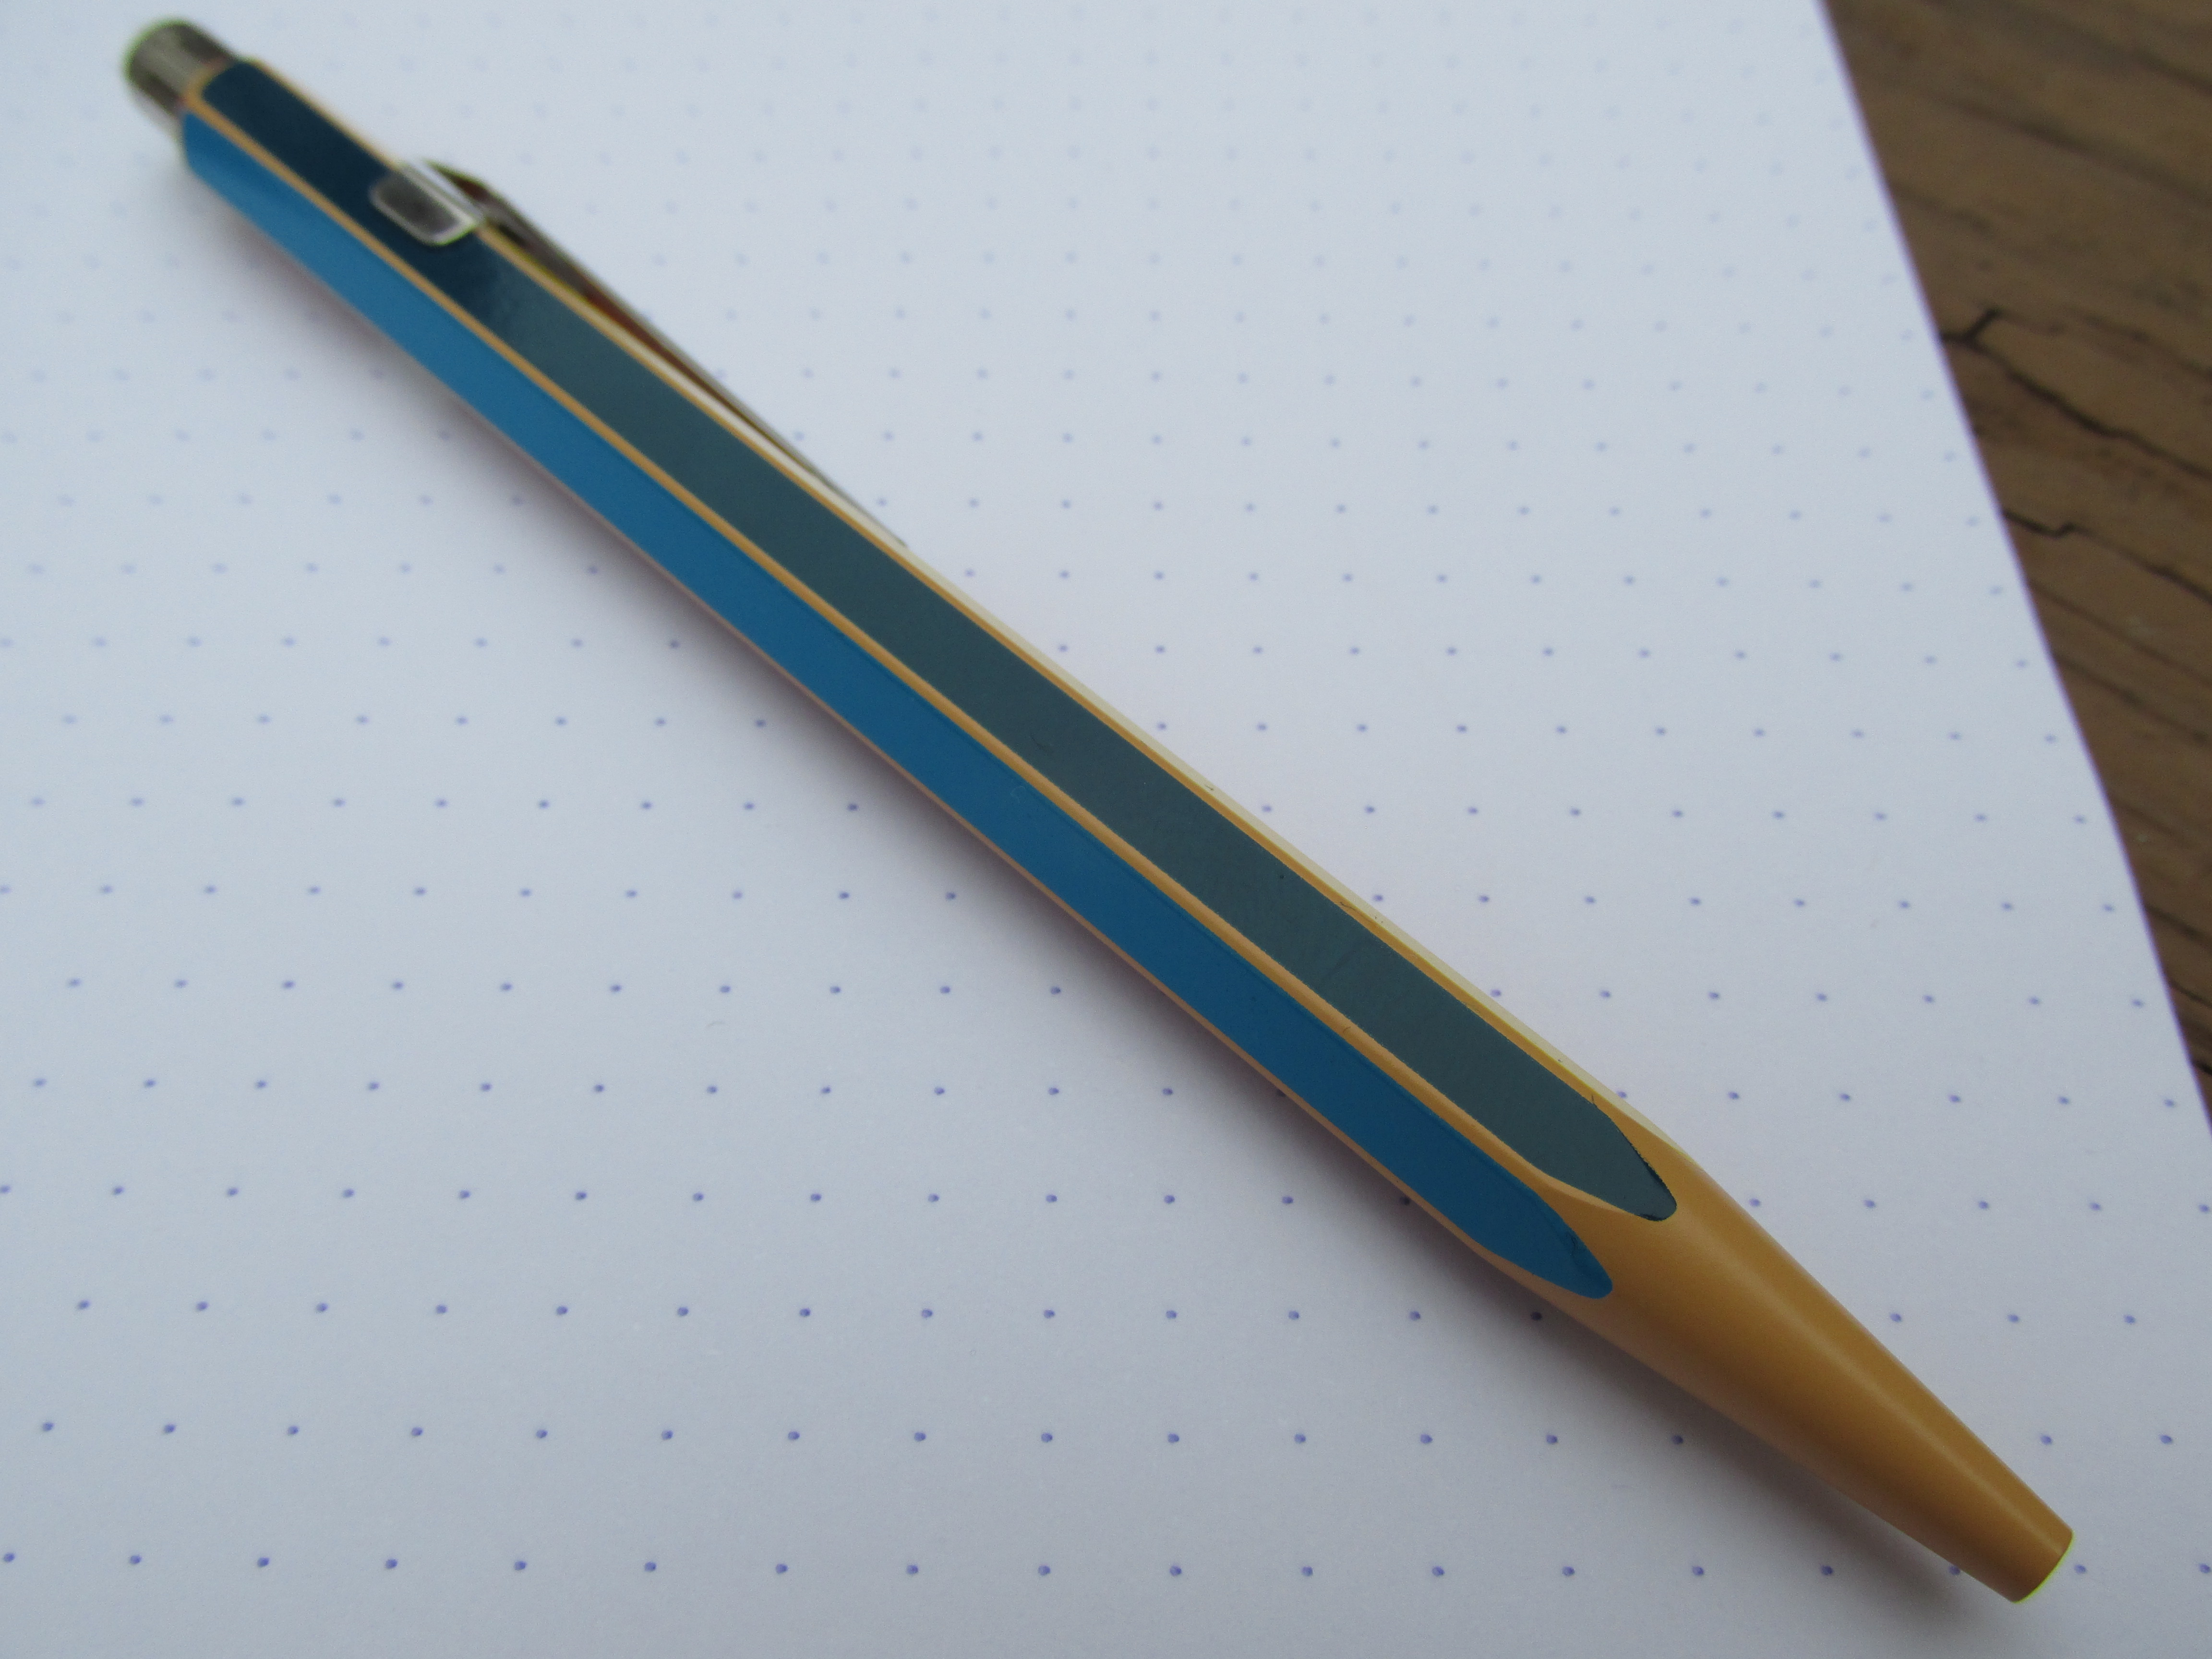 Ballpoint That One Pen Circuit Board Rollerball And Ink Nerd Gift Carandache849j